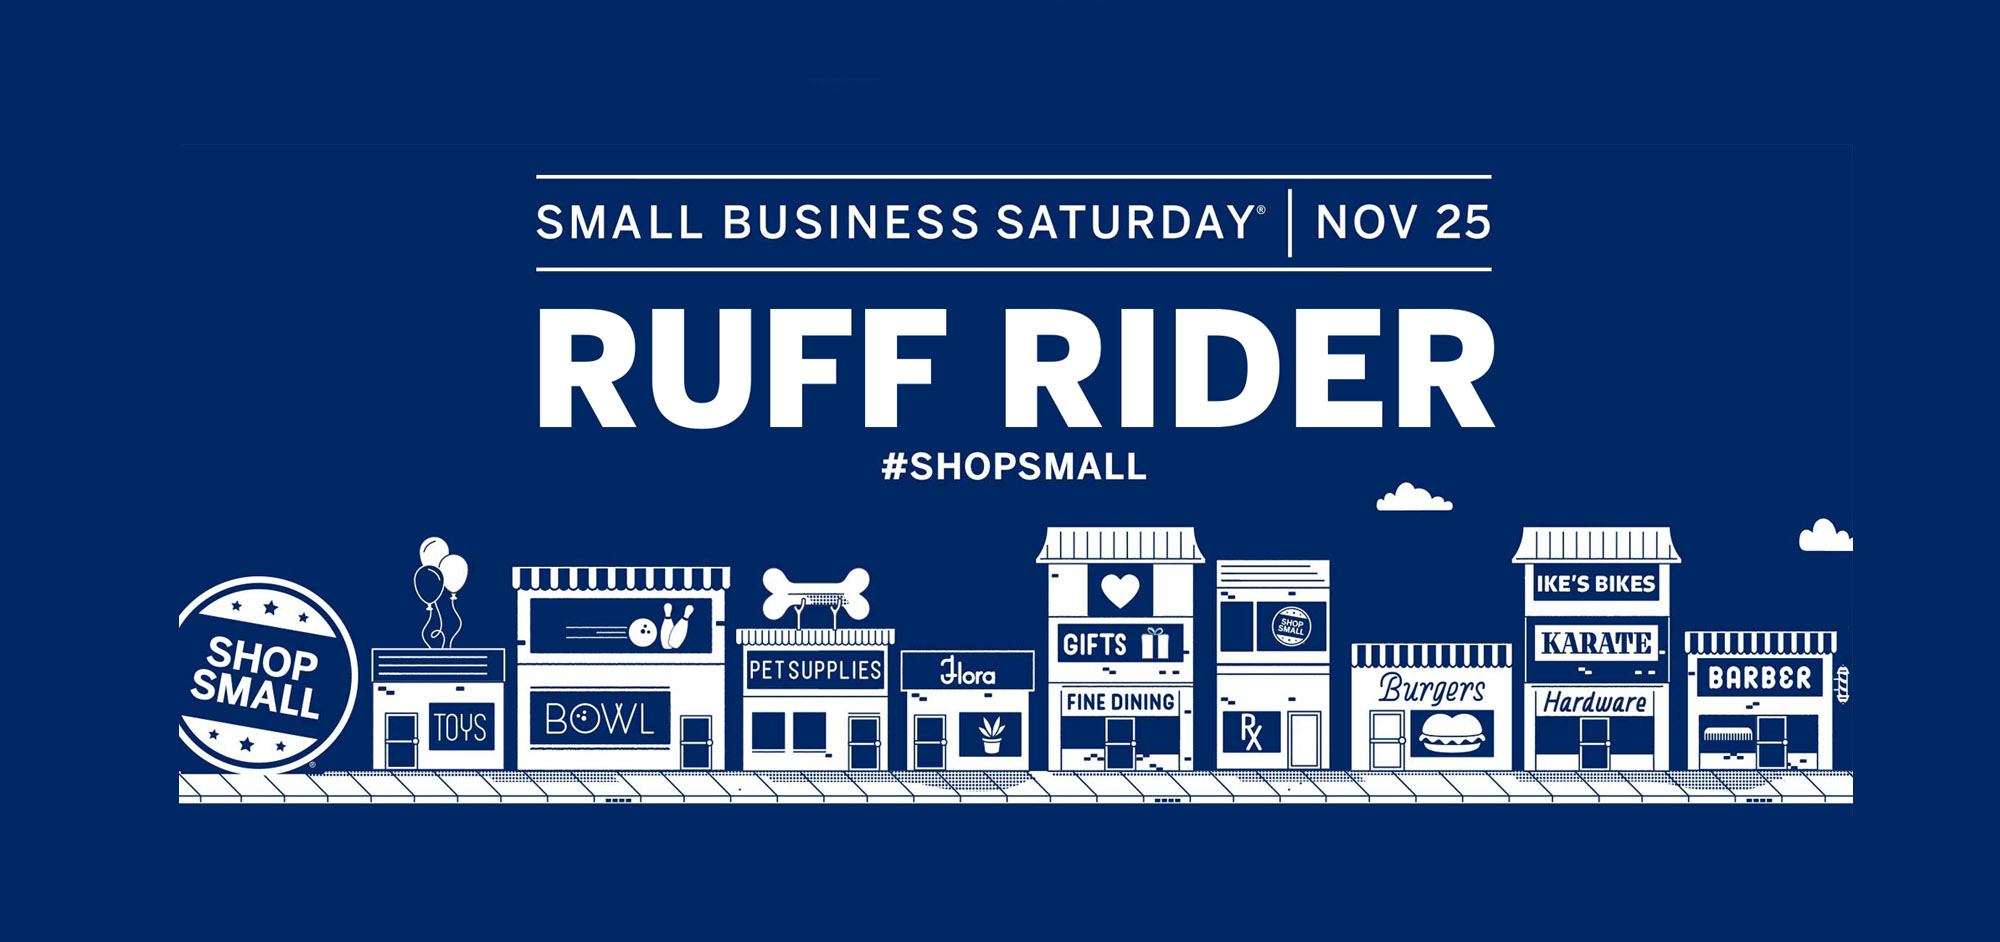 Shop Small with Ruff Rider